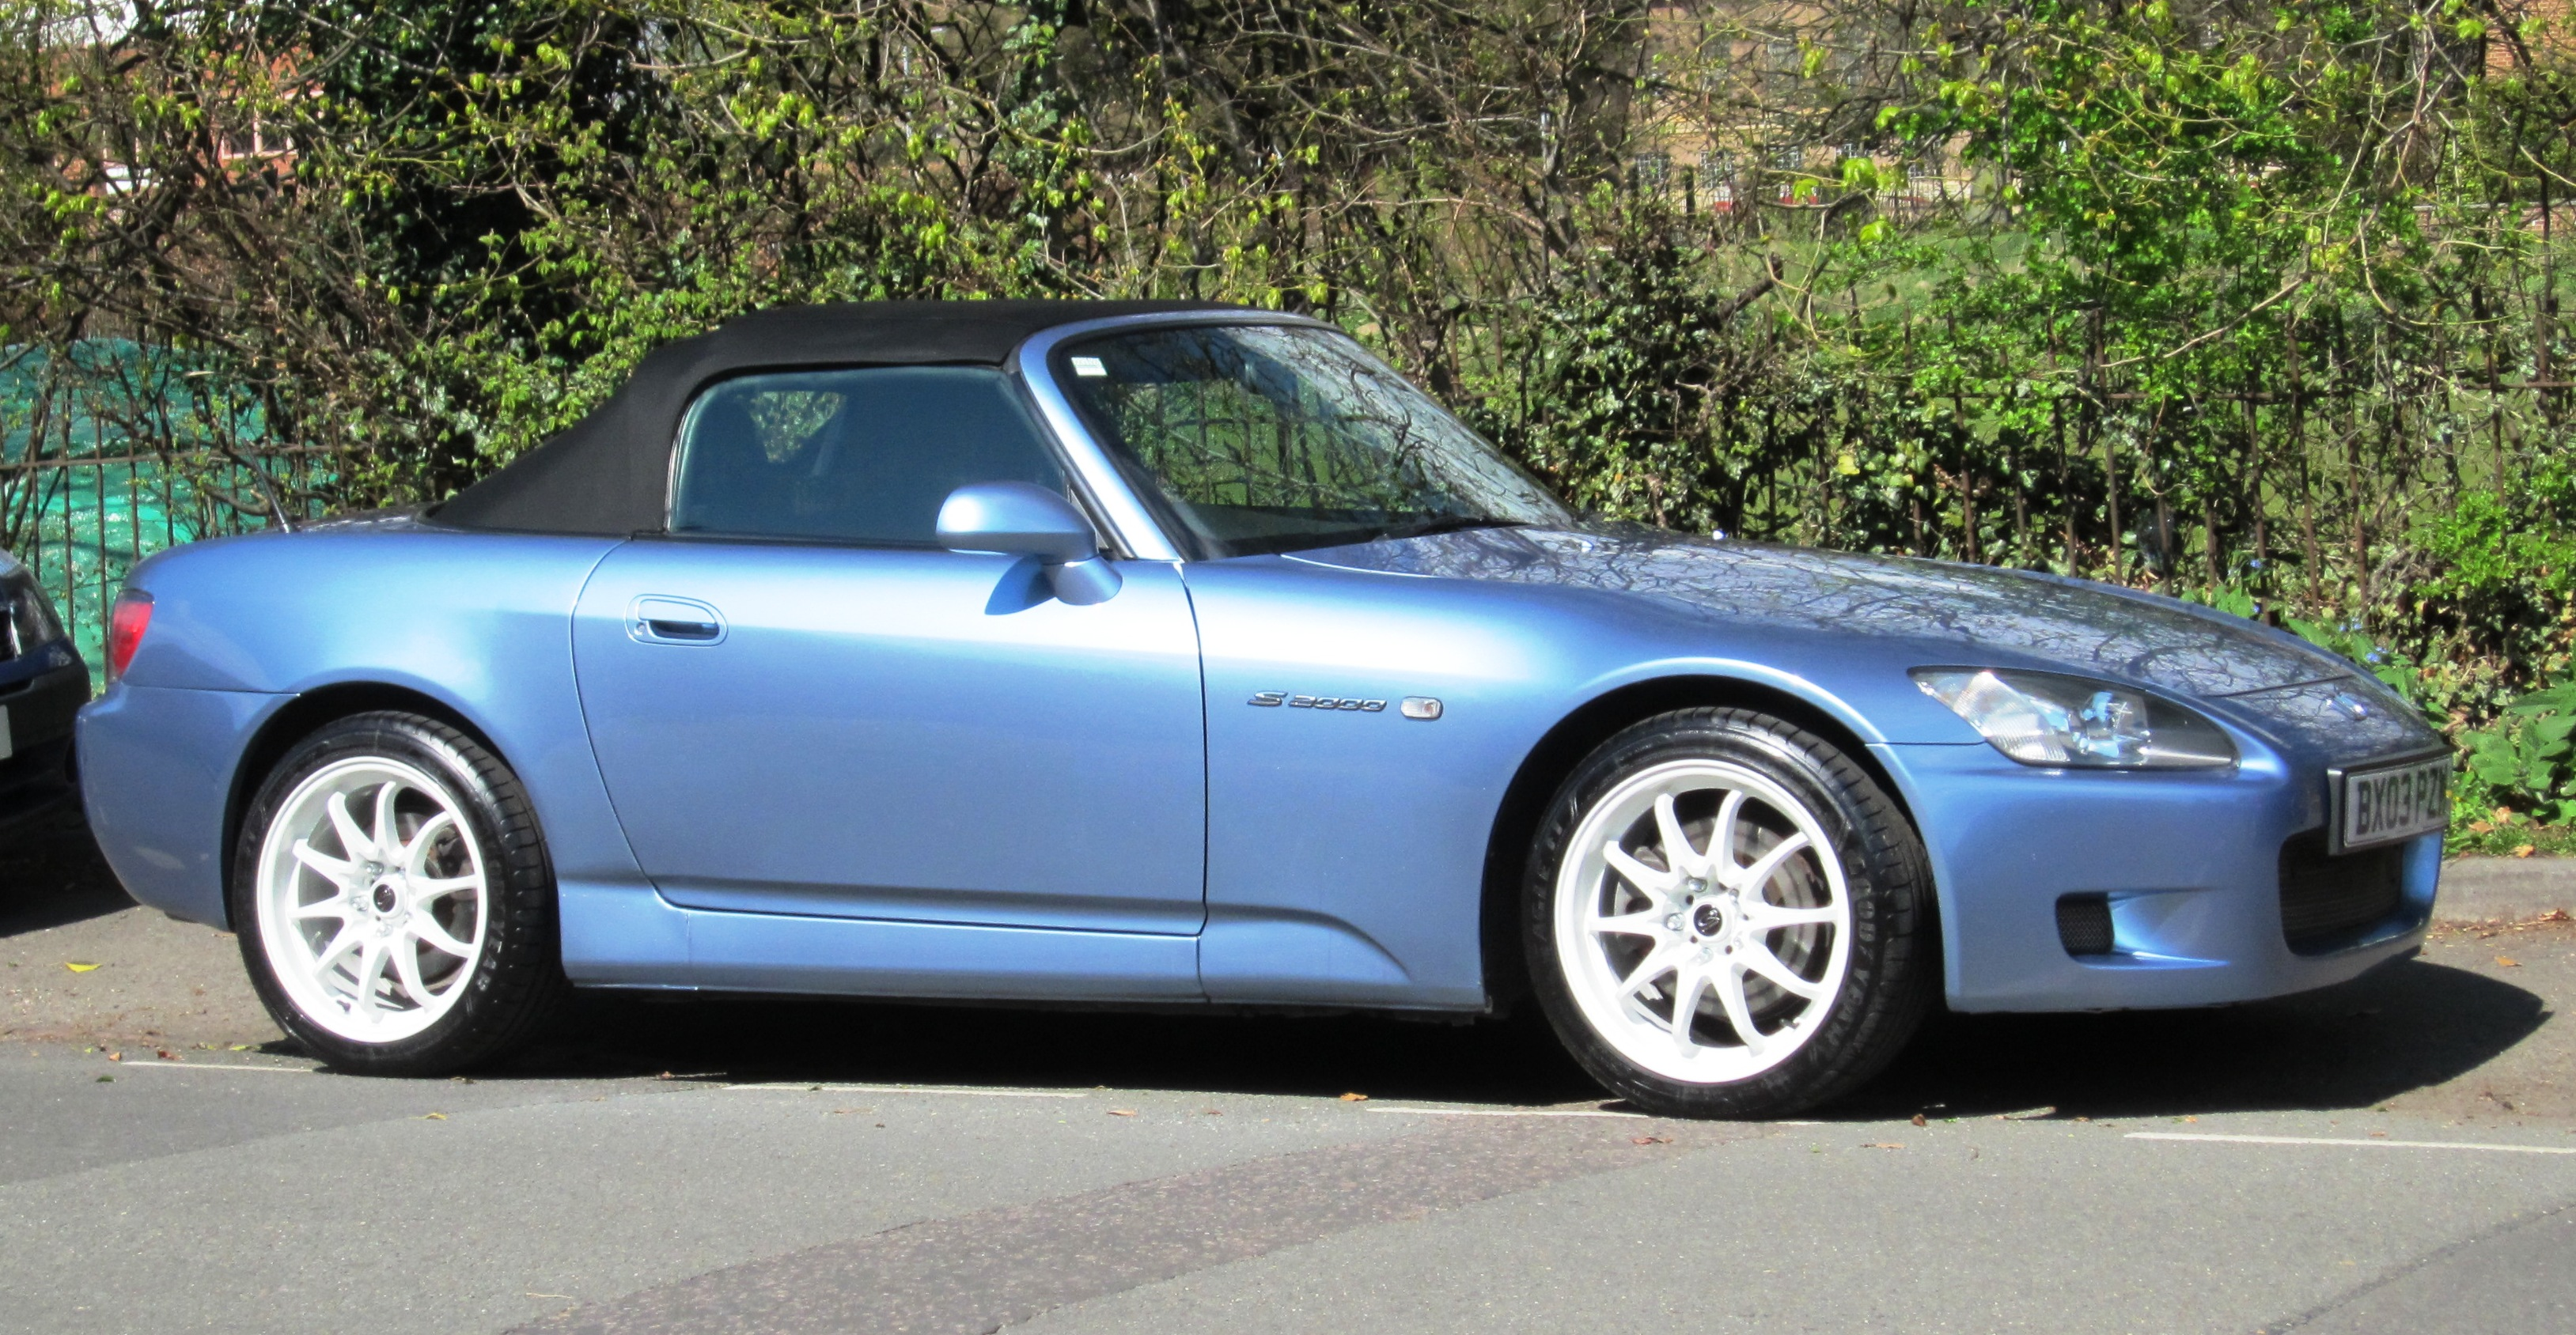 Honda S2000 Related Images Start 350 Weili Automotive